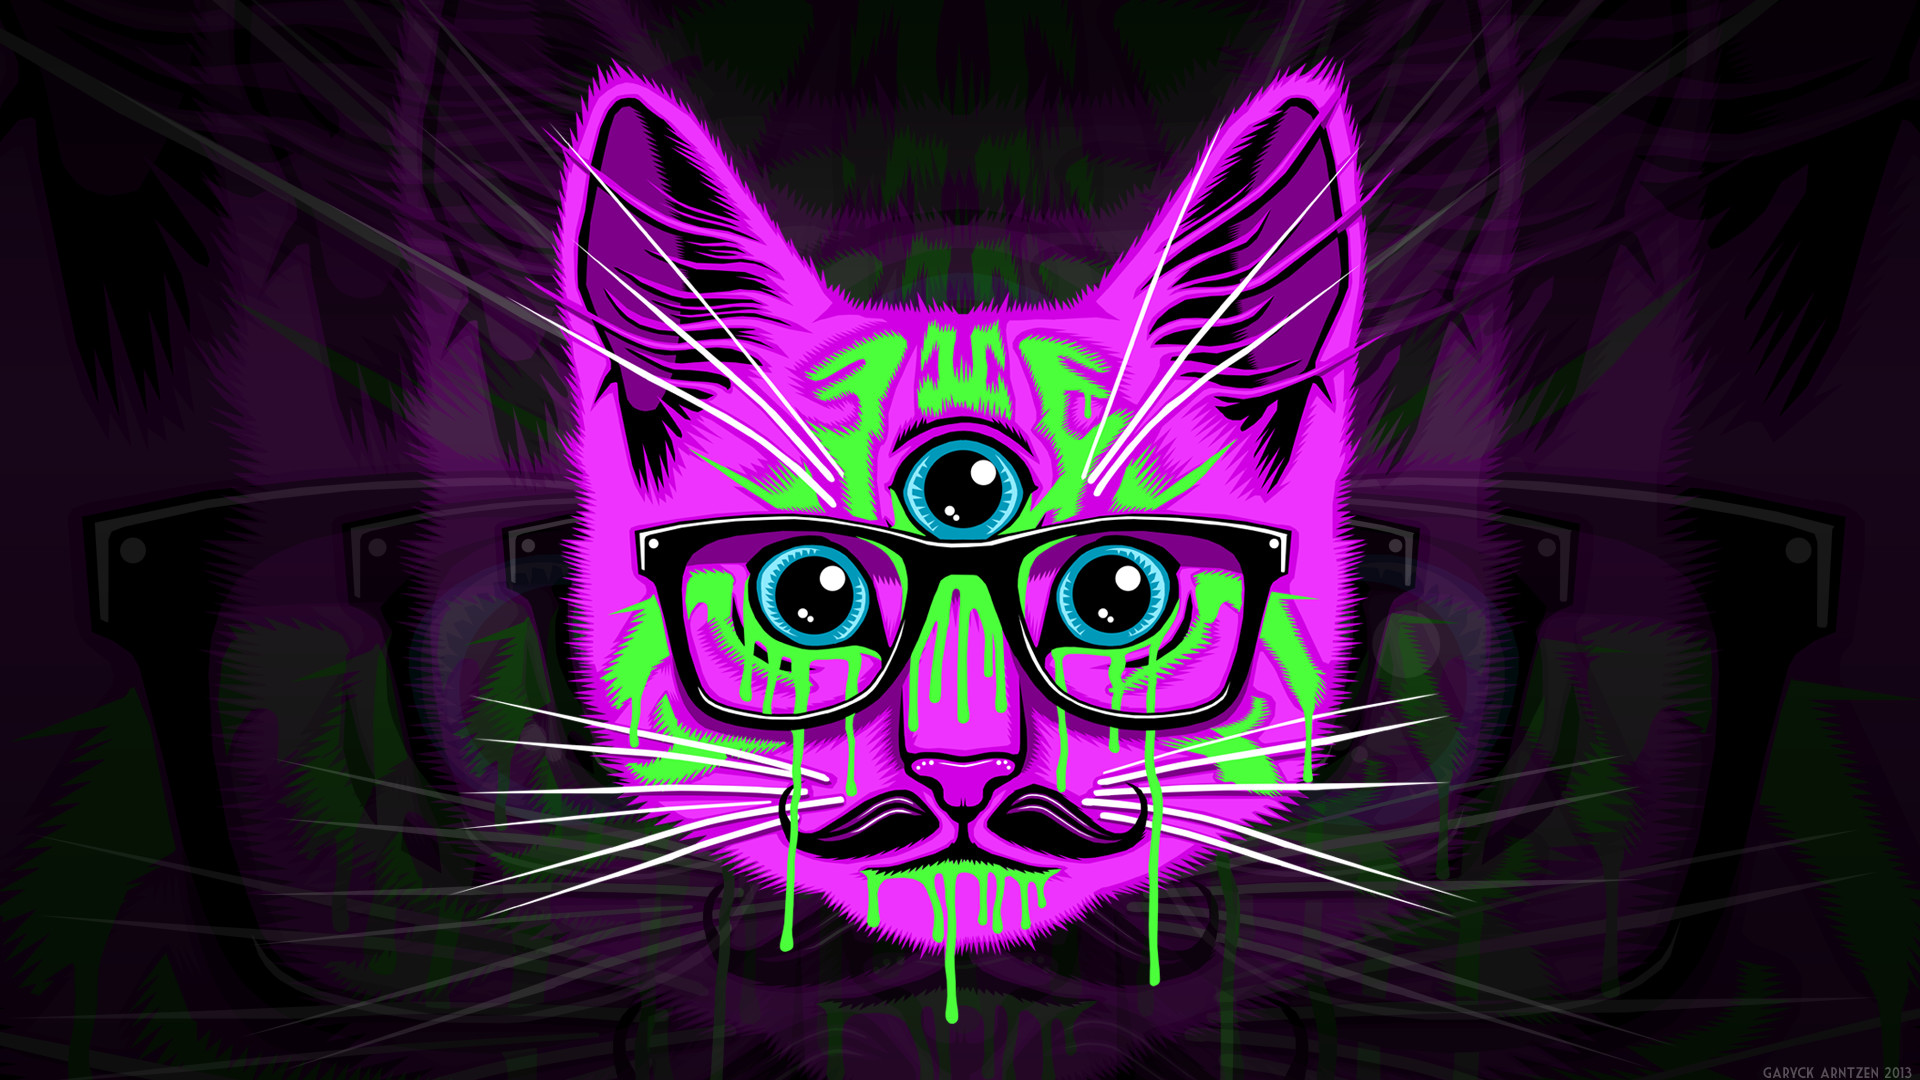 1920x1080 Meow Illuminati Wallpaper HD.